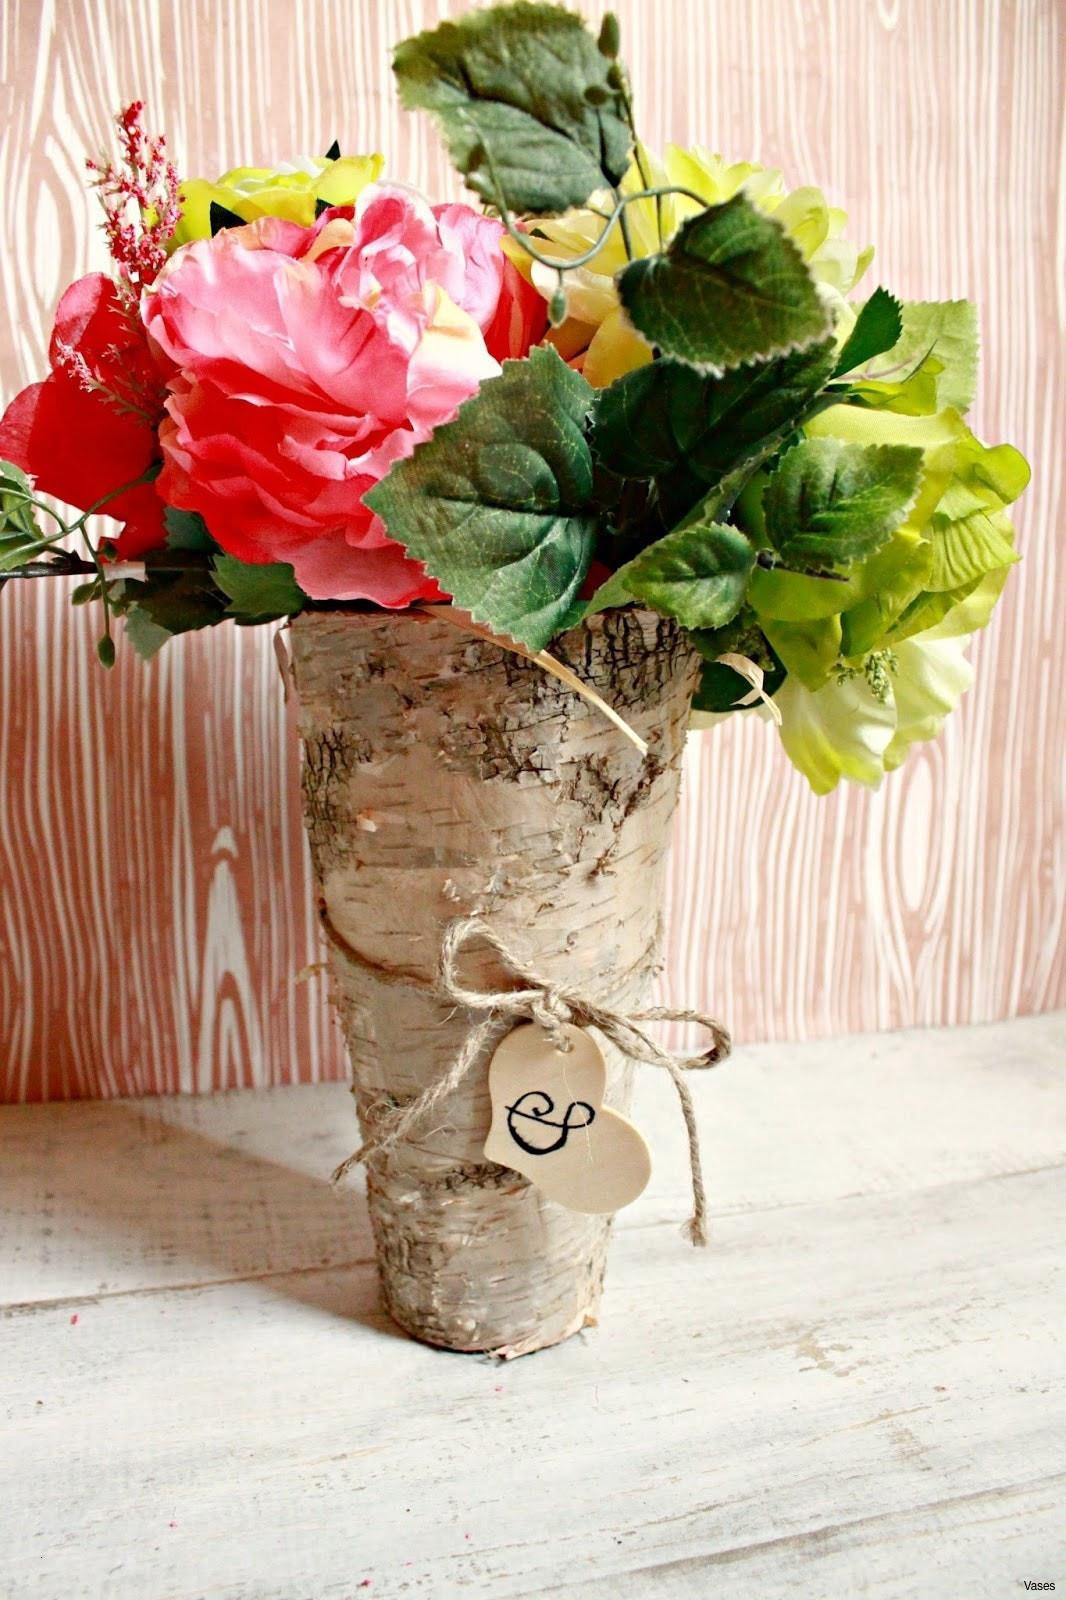 diy vase water fountain of find the best photo on wood diy trends economyinnbeebe com within photo on wood diy new simple wedding decorations awesome flowers and decorations for